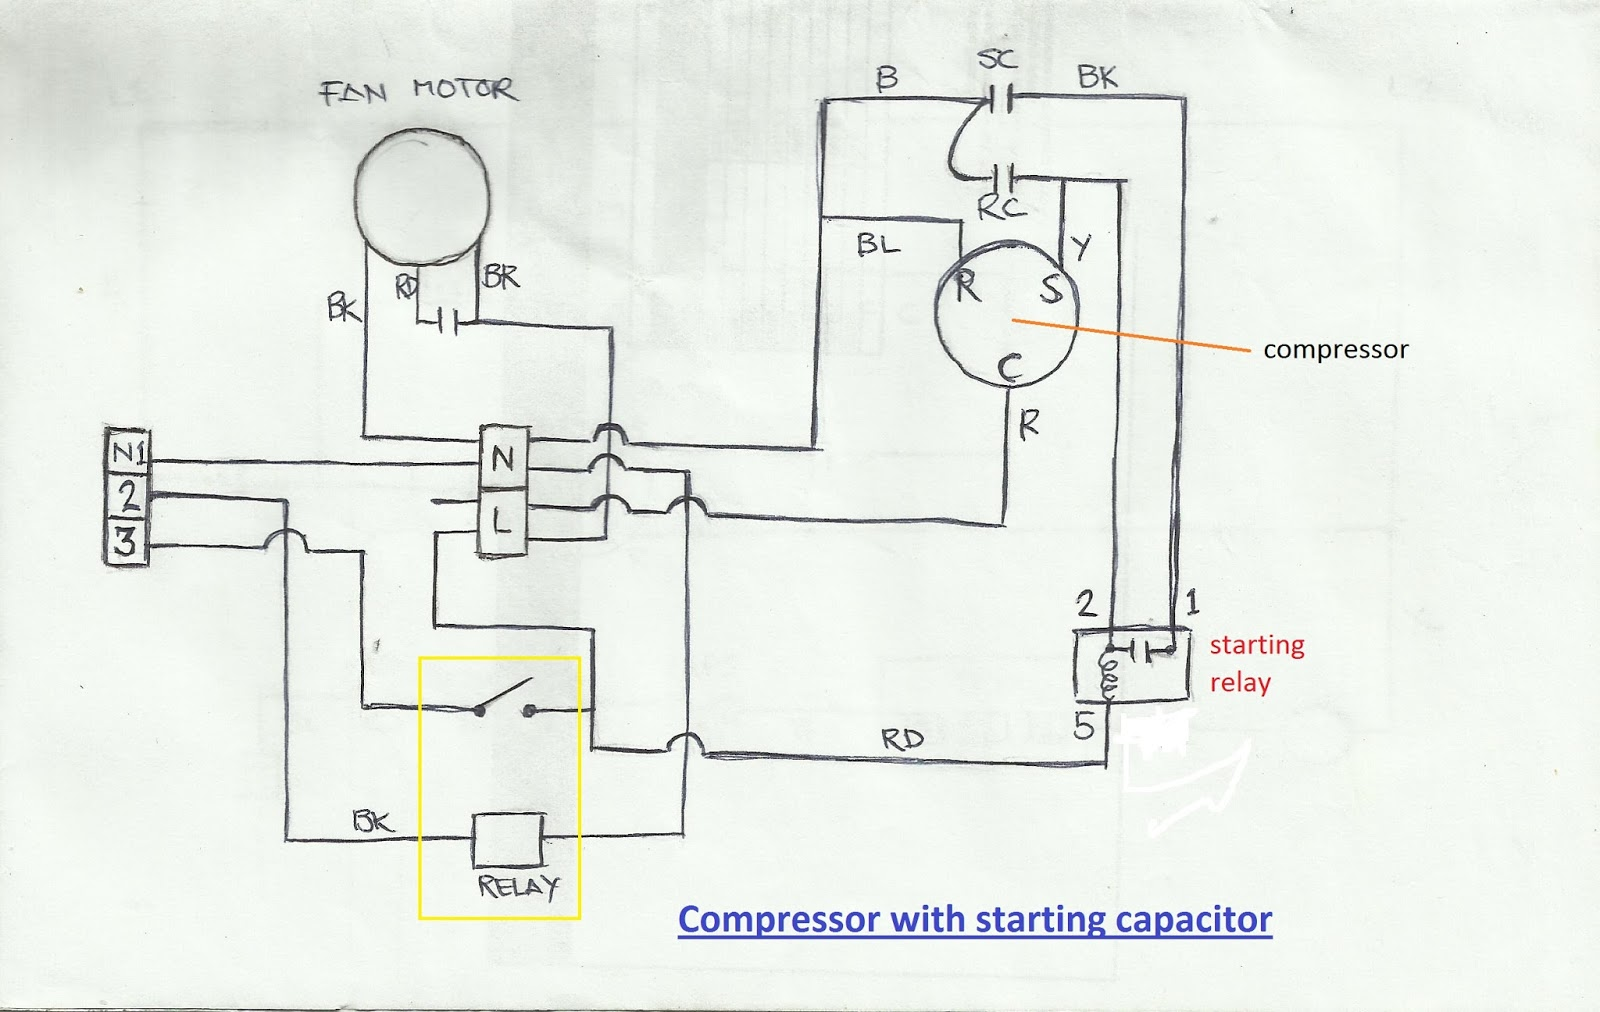 18 refrigeration and air conditioning repair wiring diagram of Single Phase Compressor Wiring Diagram at eliteediting.co